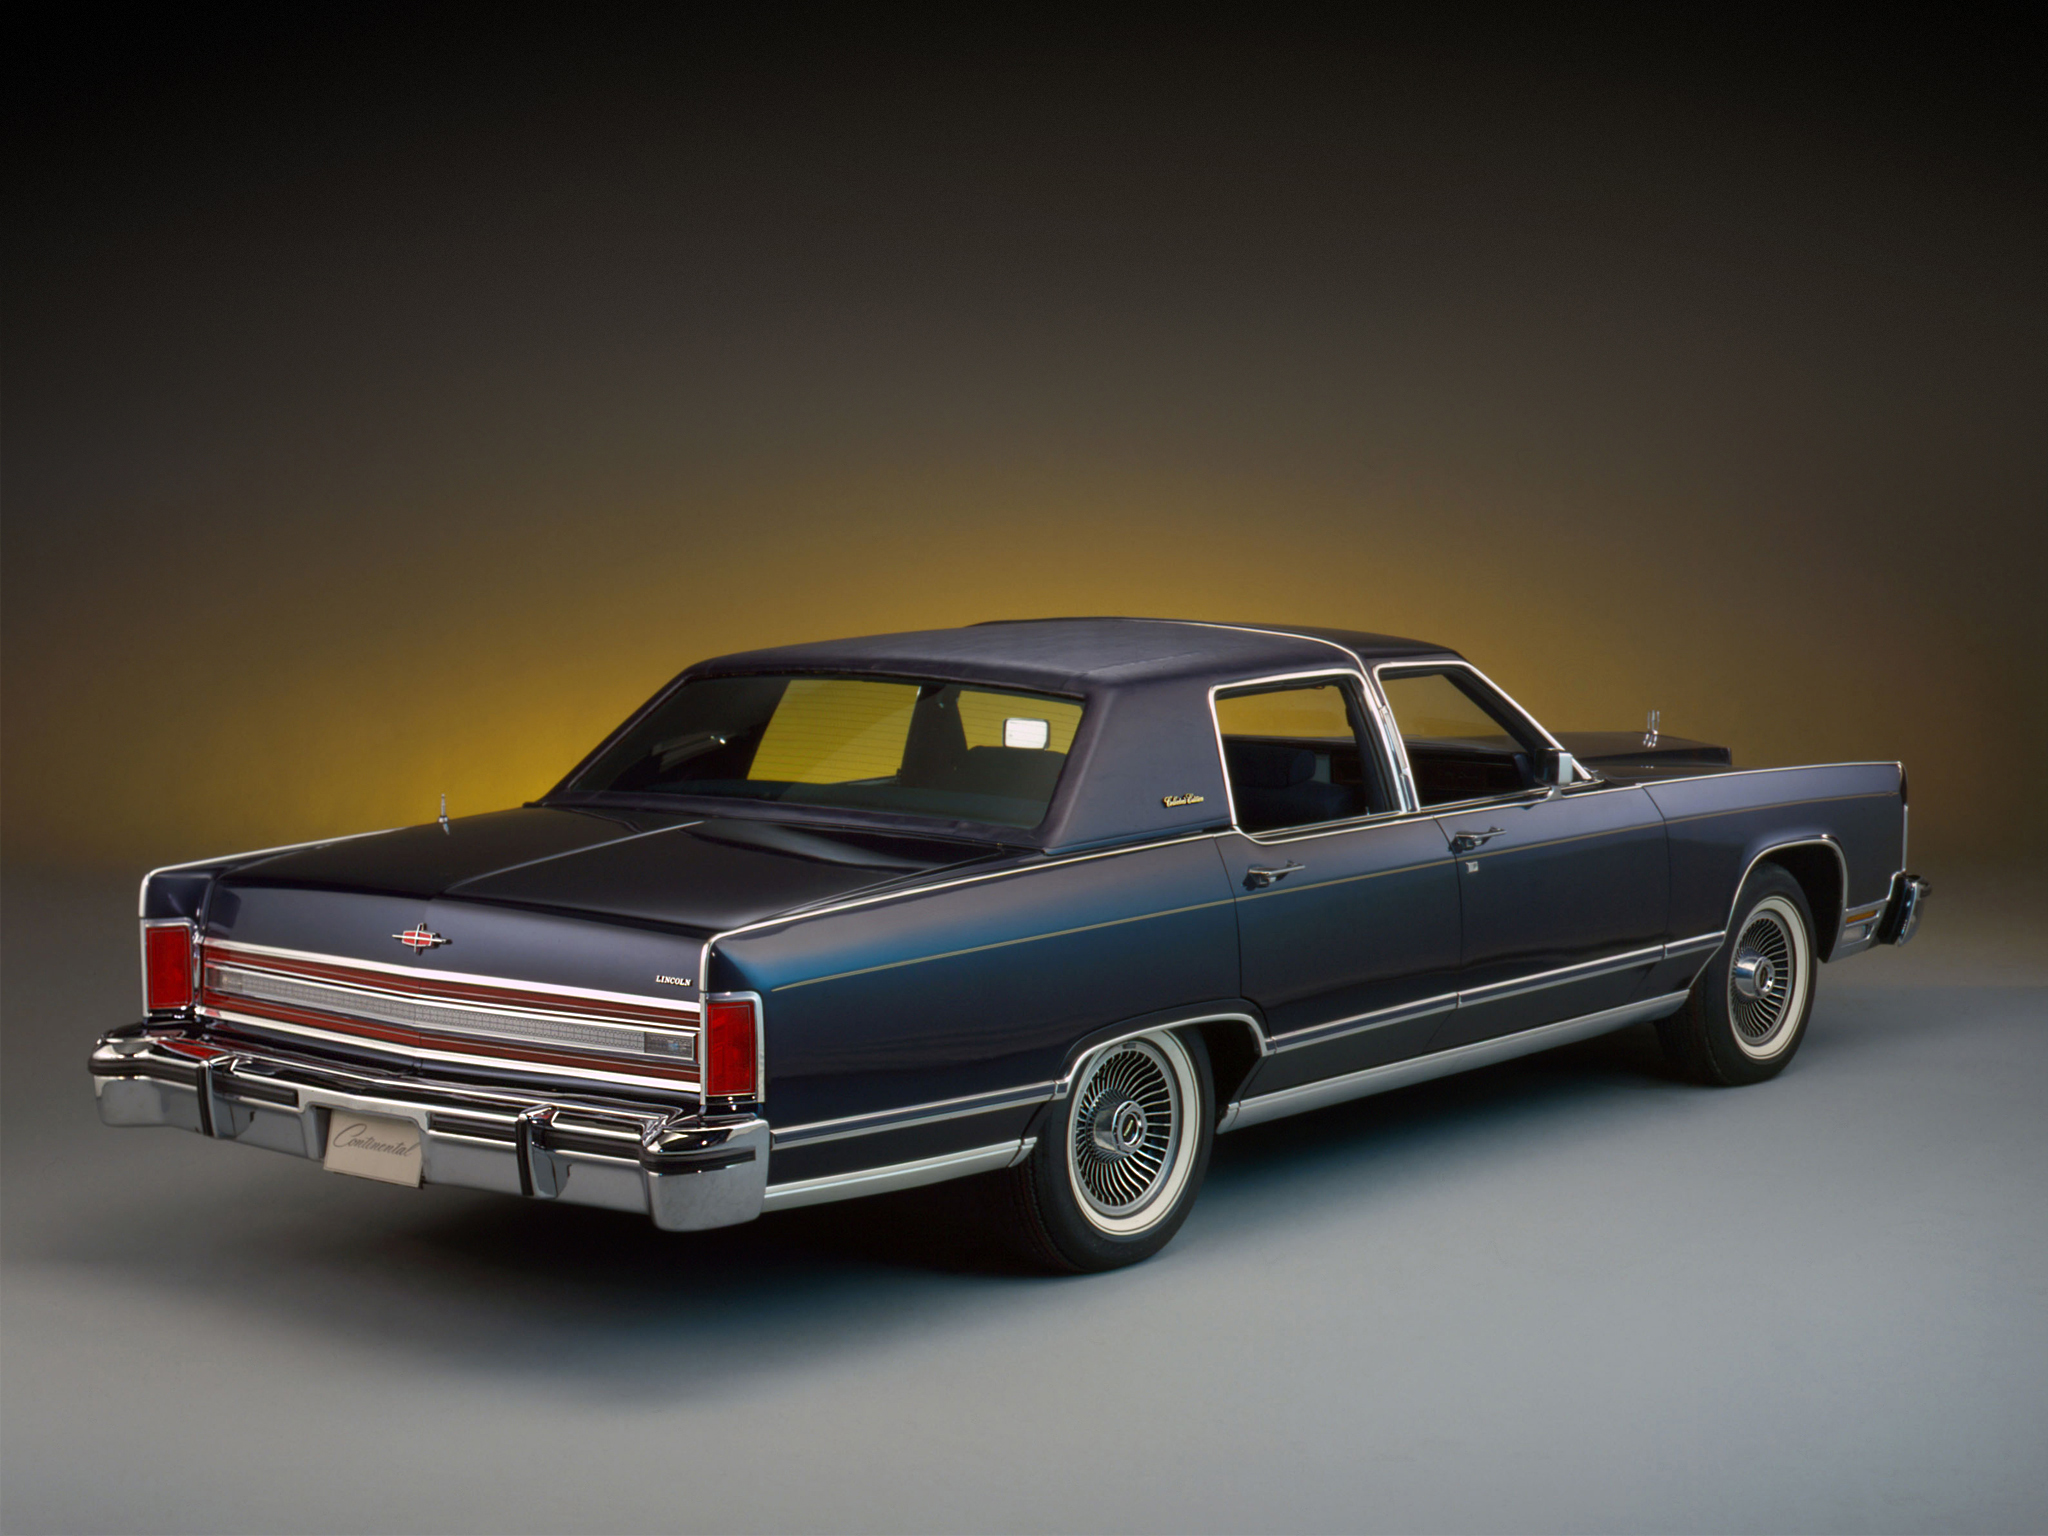 1979 Lincoln Continental Luxury Classic H Wallpaper 2048x1536